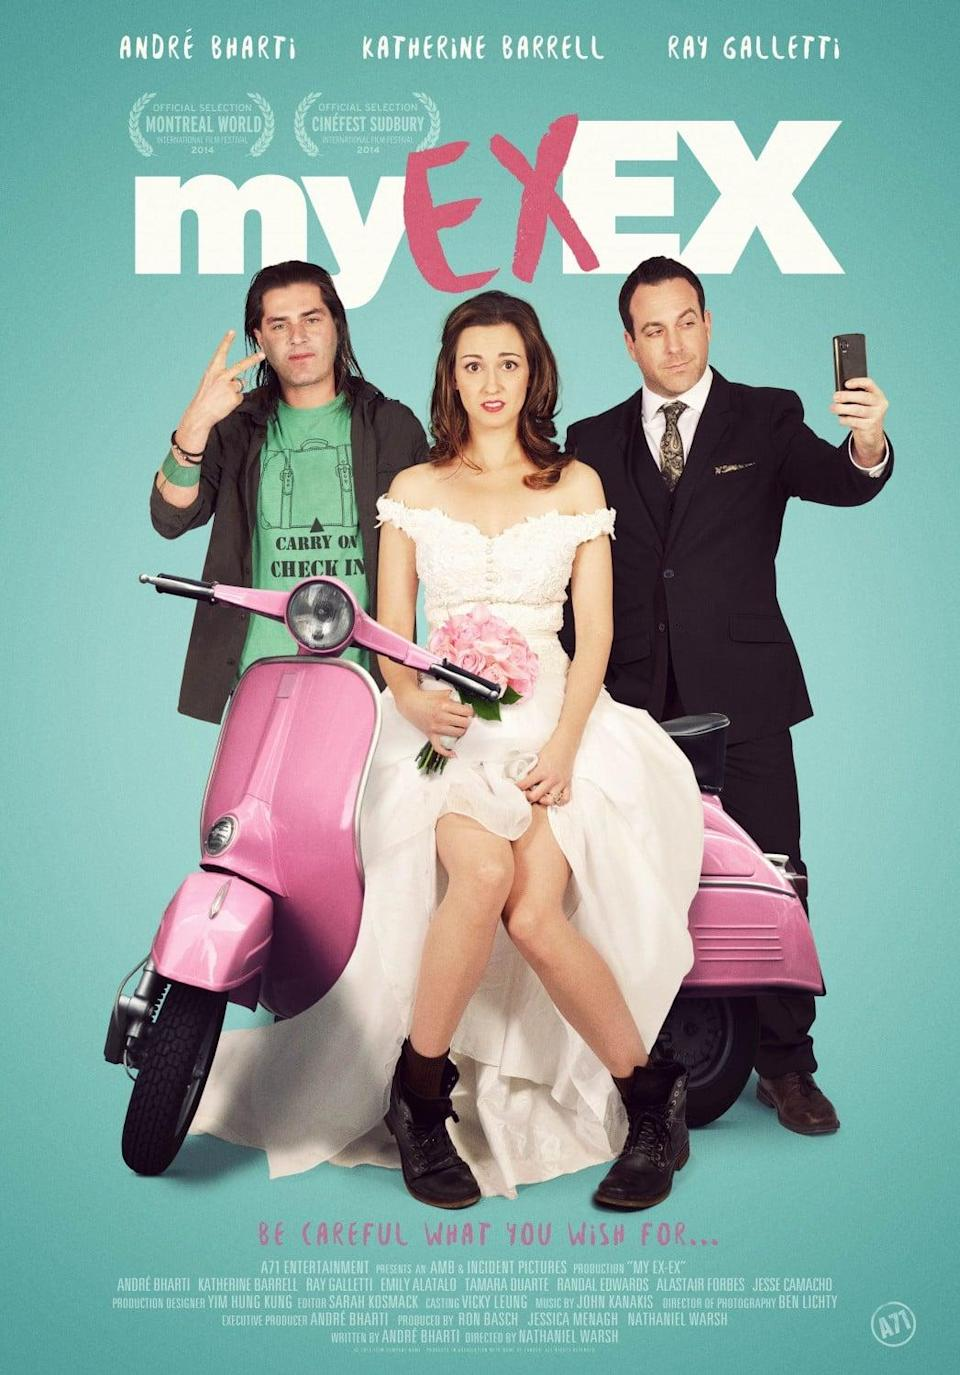 """<p>The goofy romantic comedy <strong>My Ex-Ex</strong> follows the story of a jilted woman named Mary who gets in touch with a psychic to win back the affections of her ex-boyfriend. In a dramatic turn of events, Mary must choose between her recent beau and her college boyfriend. </p> <p>Watch <strong> <a href=""""http://www.netflix.com/title/80163191"""" class=""""link rapid-noclick-resp"""" rel=""""nofollow noopener"""" target=""""_blank"""" data-ylk=""""slk:My Ex-Ex"""">My Ex-Ex</a> </strong> on Netflix now.</p>"""